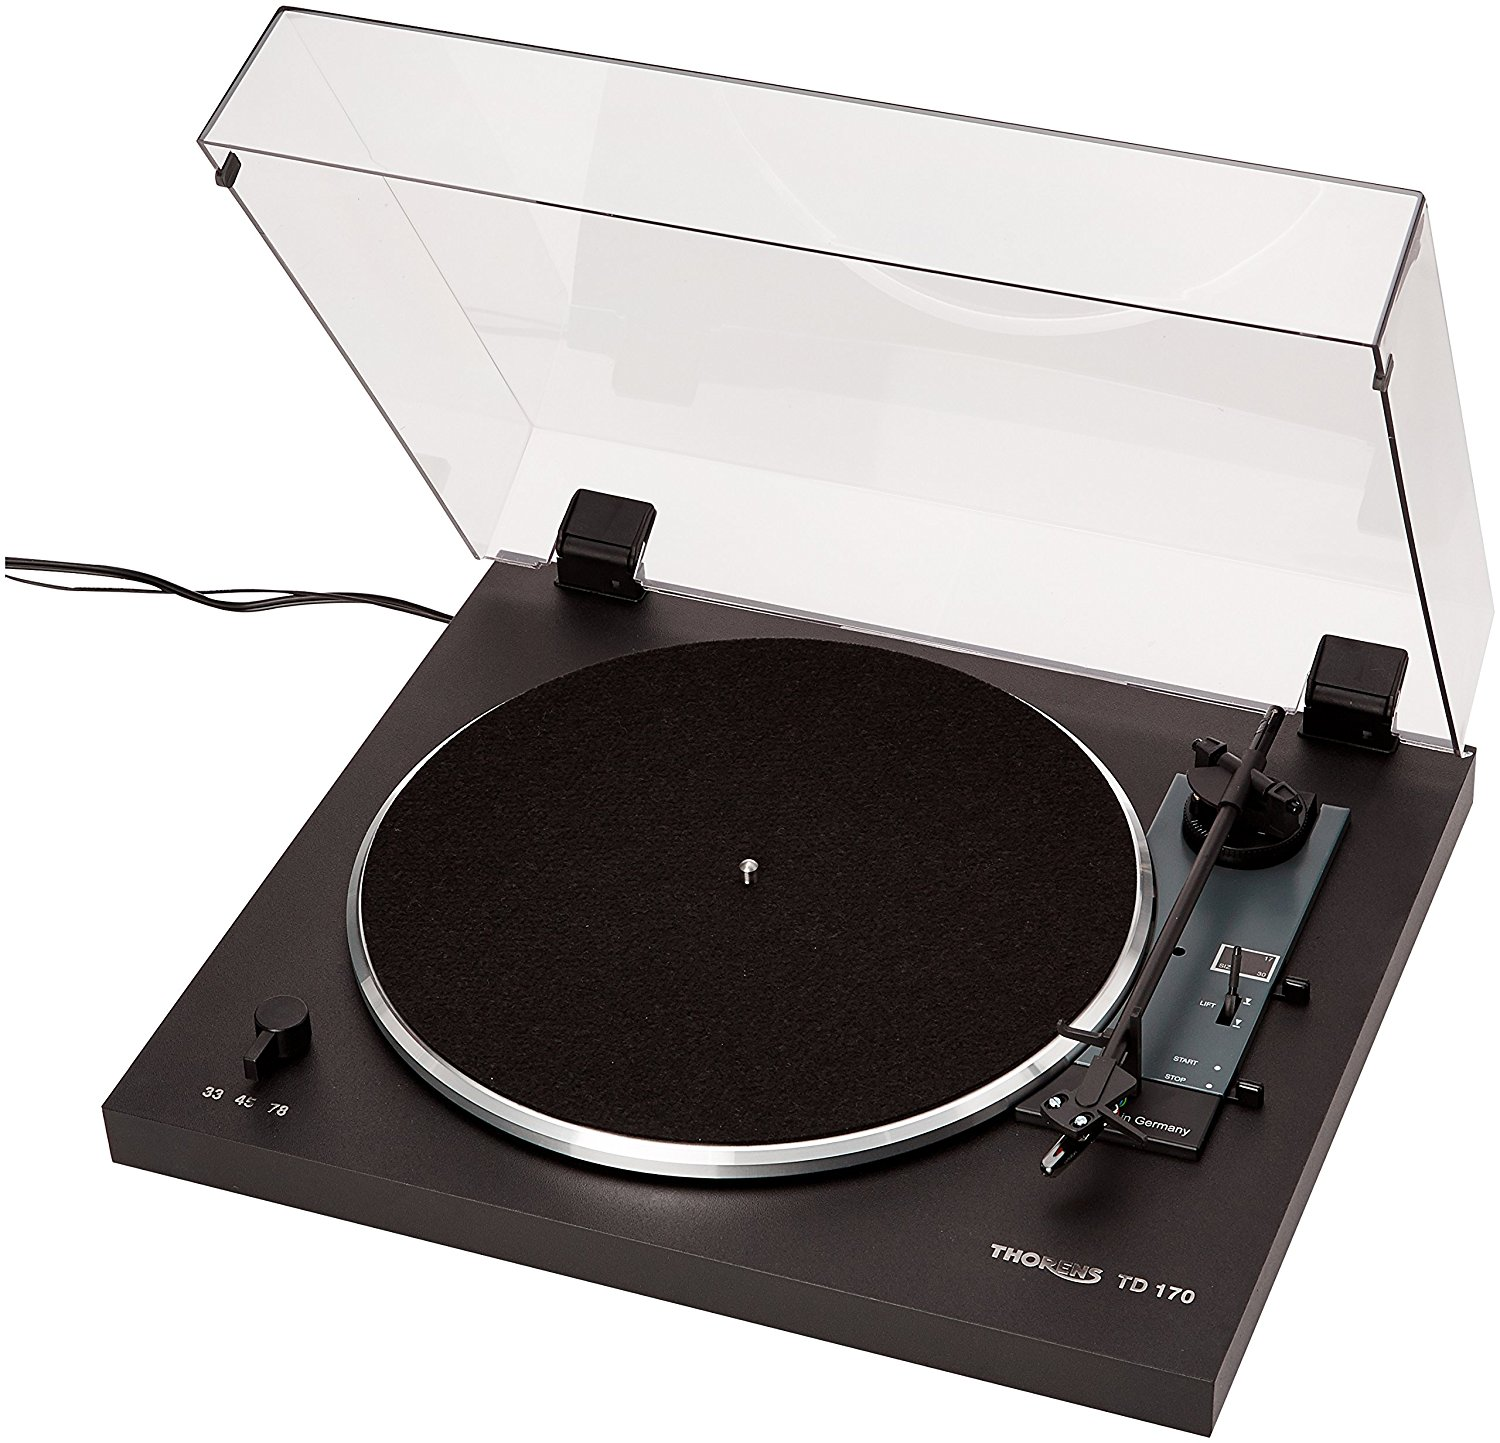 Thorens 170 turntable